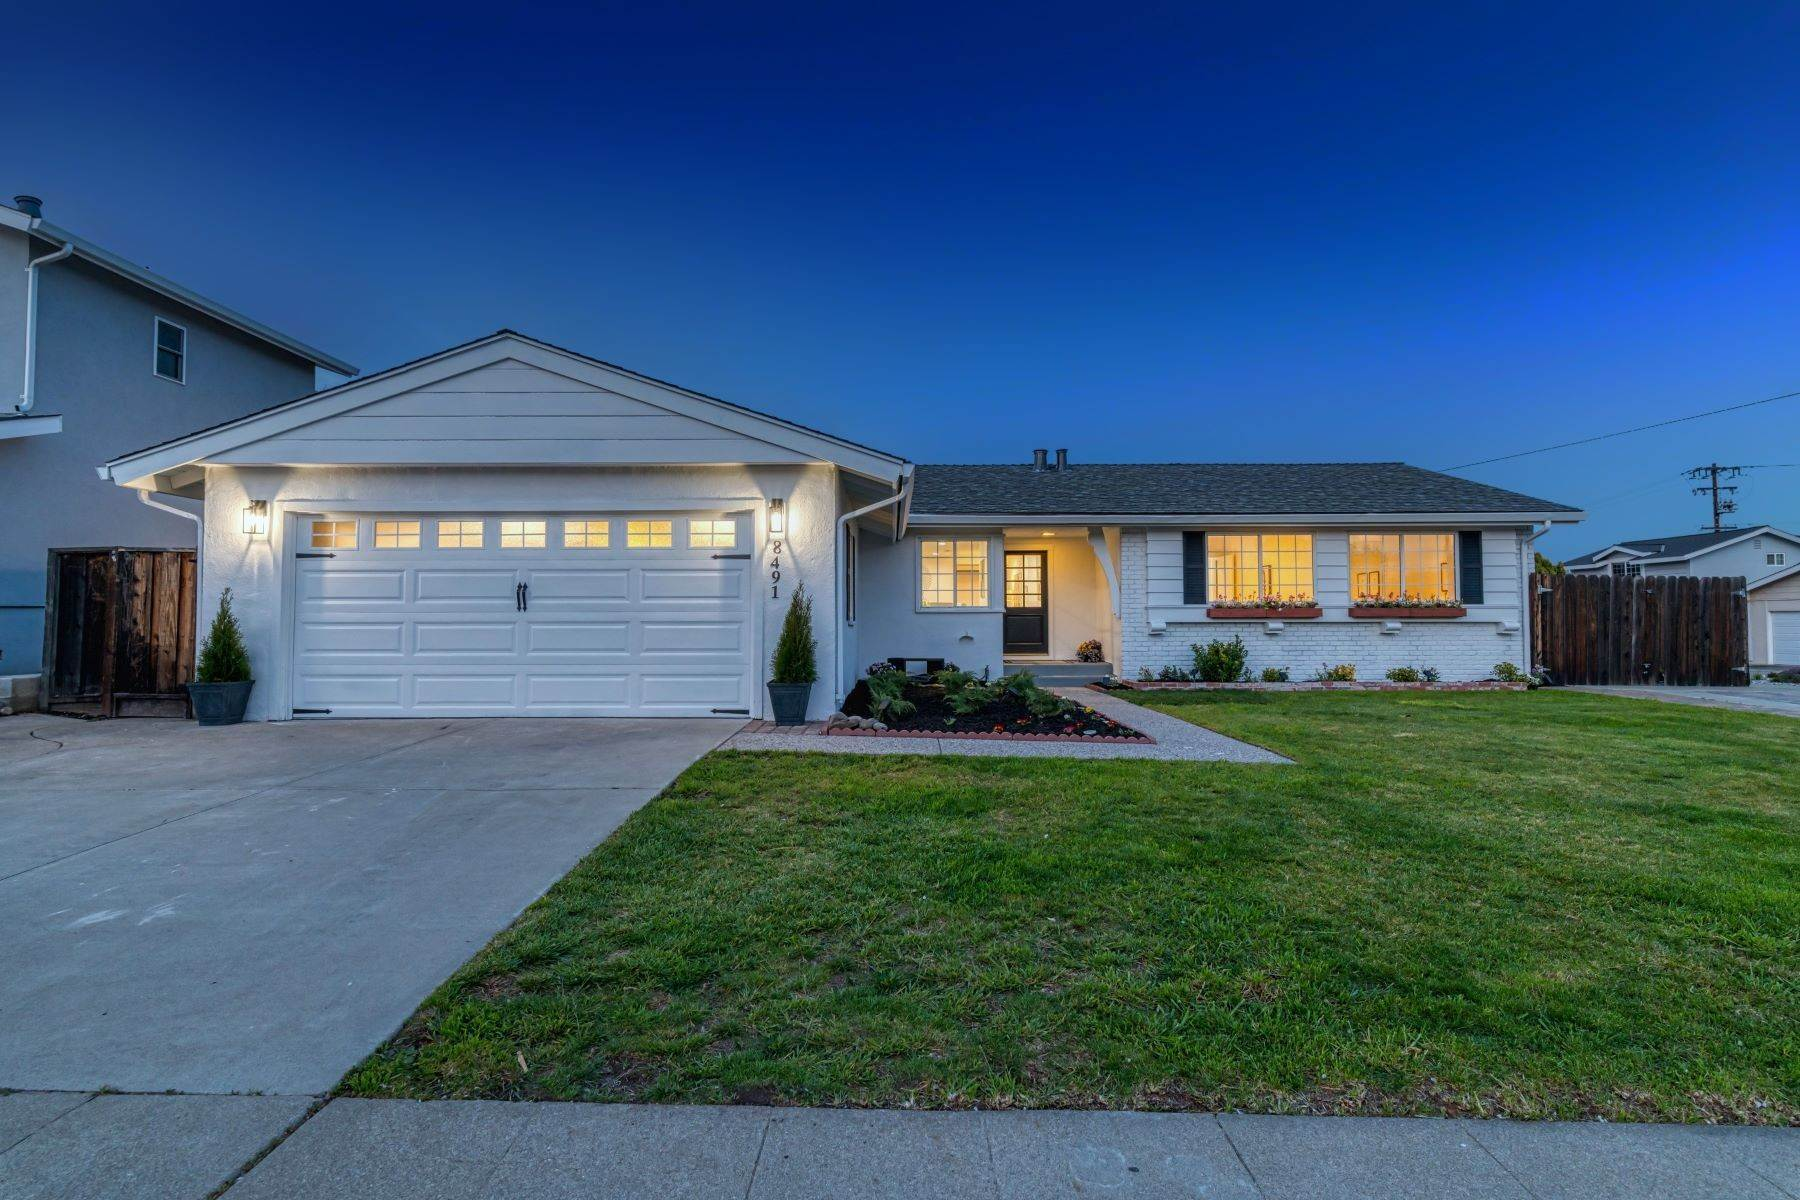 Single Family Homes for Active at 8491 Wicklow Lane, Dublin, CA 94568 8491 Wicklow Lane Dublin, California 94568 United States